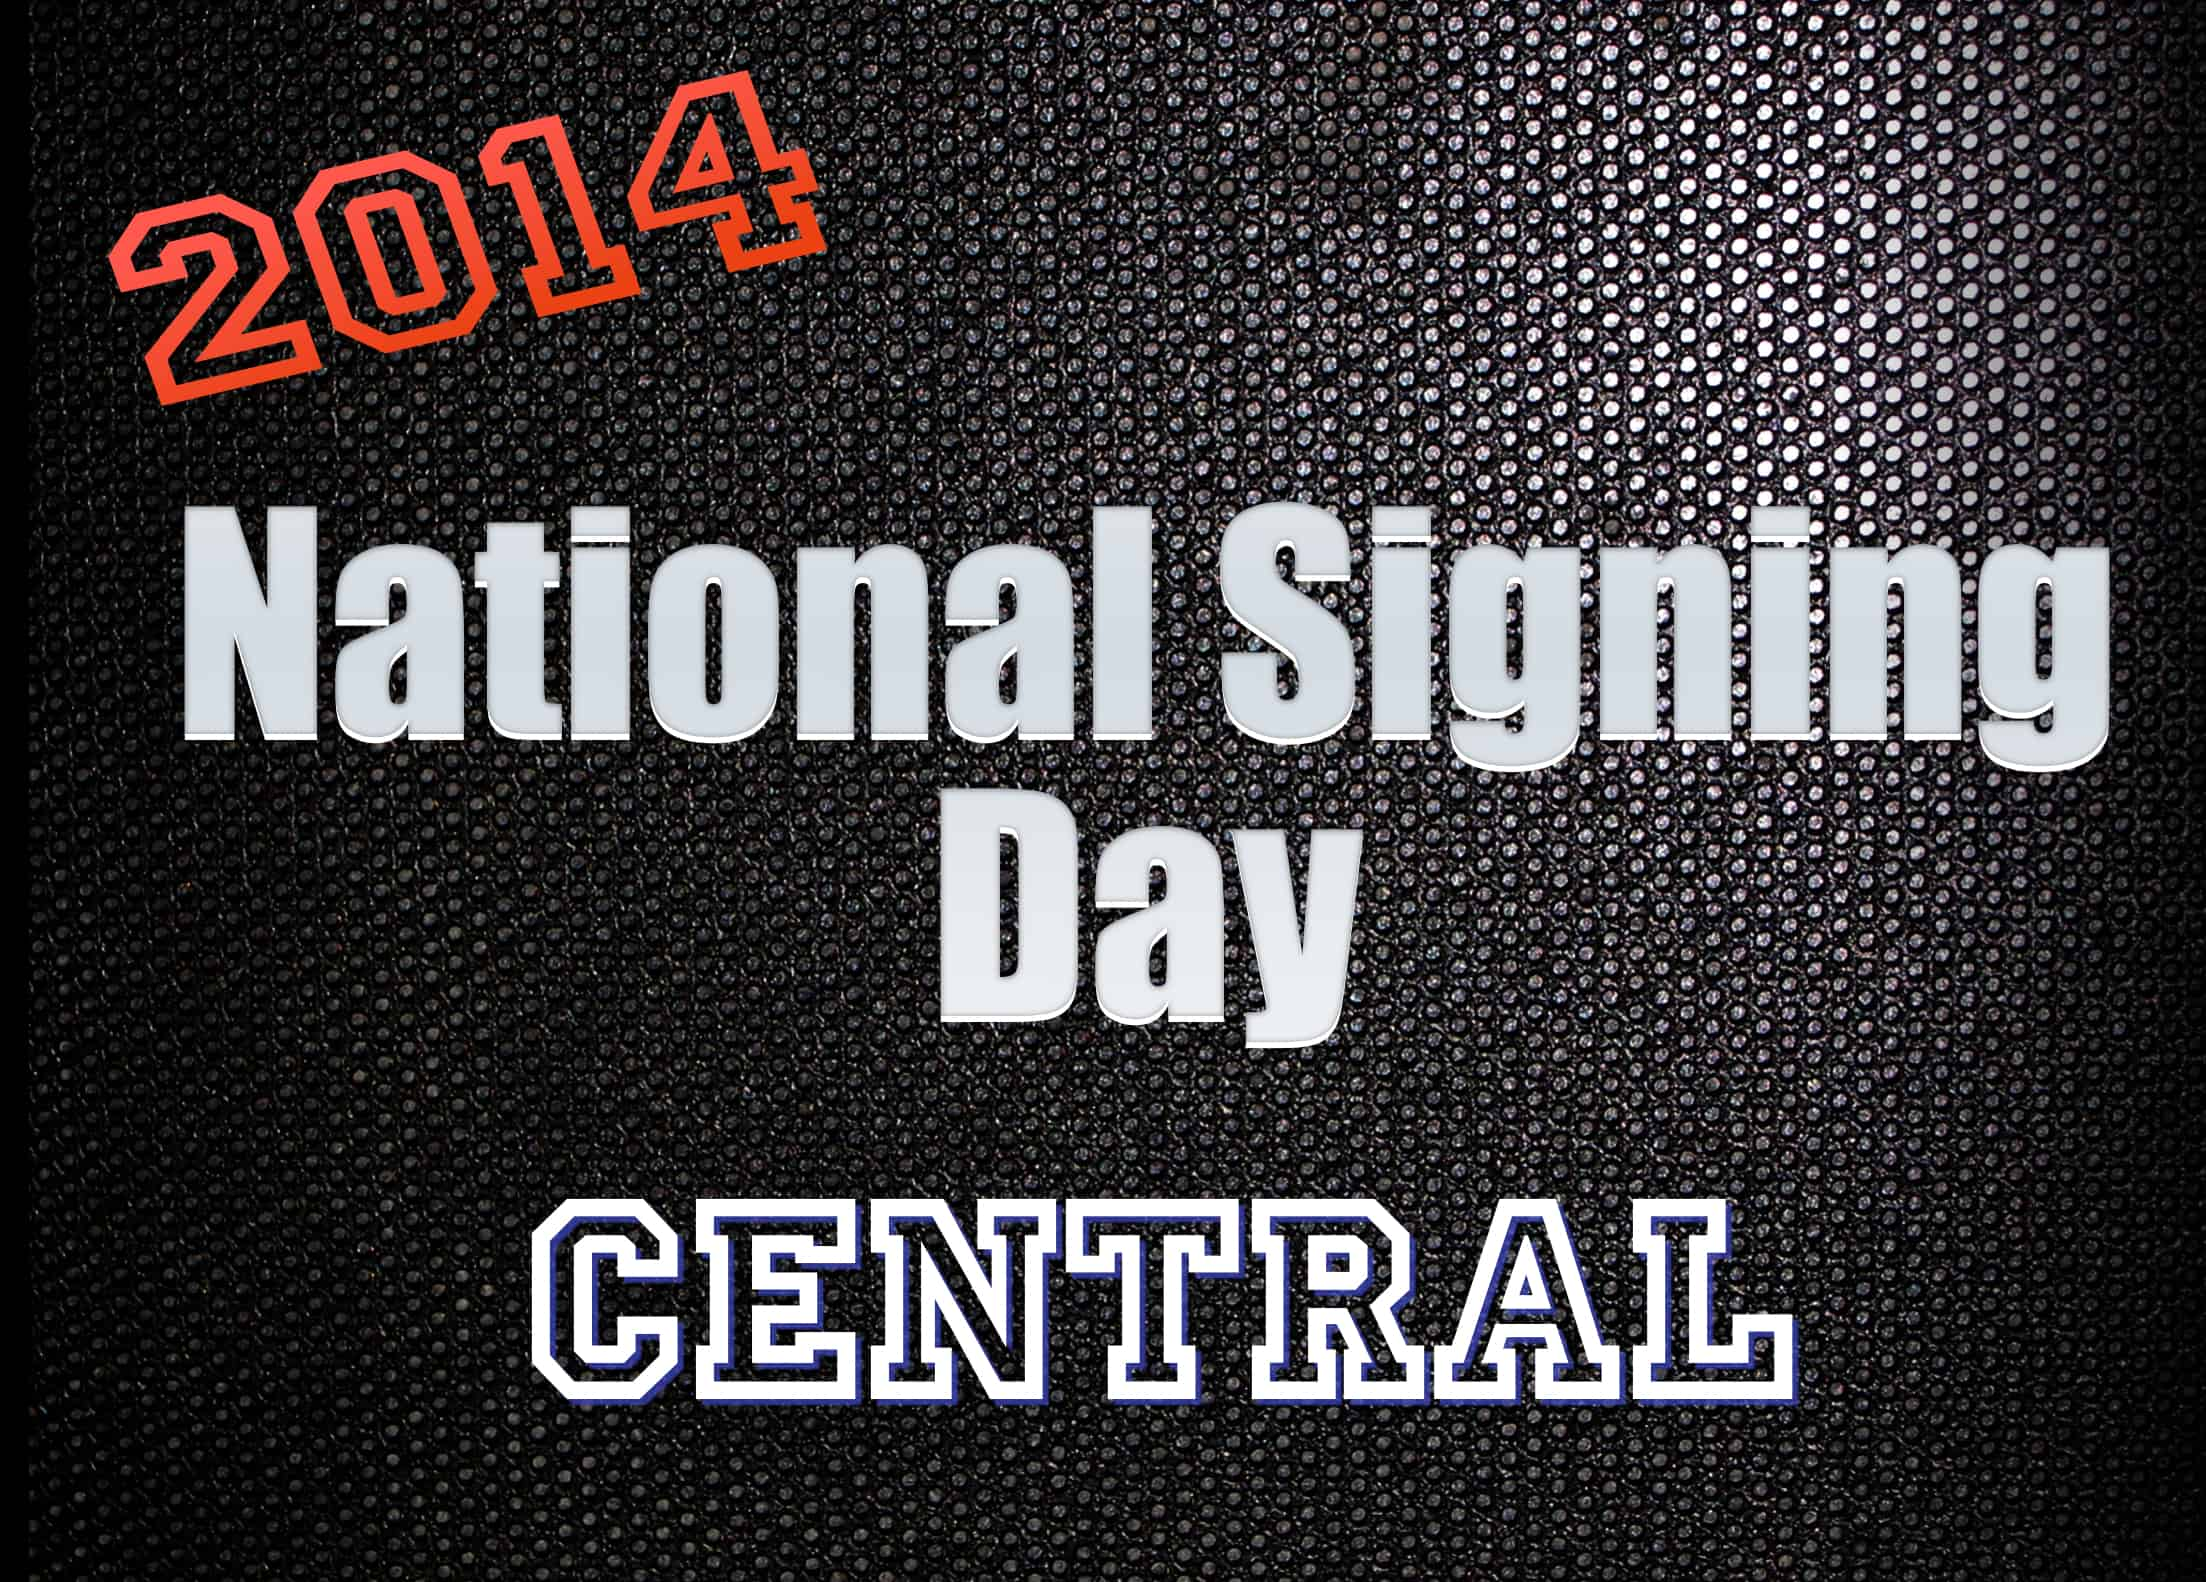 NSD 2014 Central